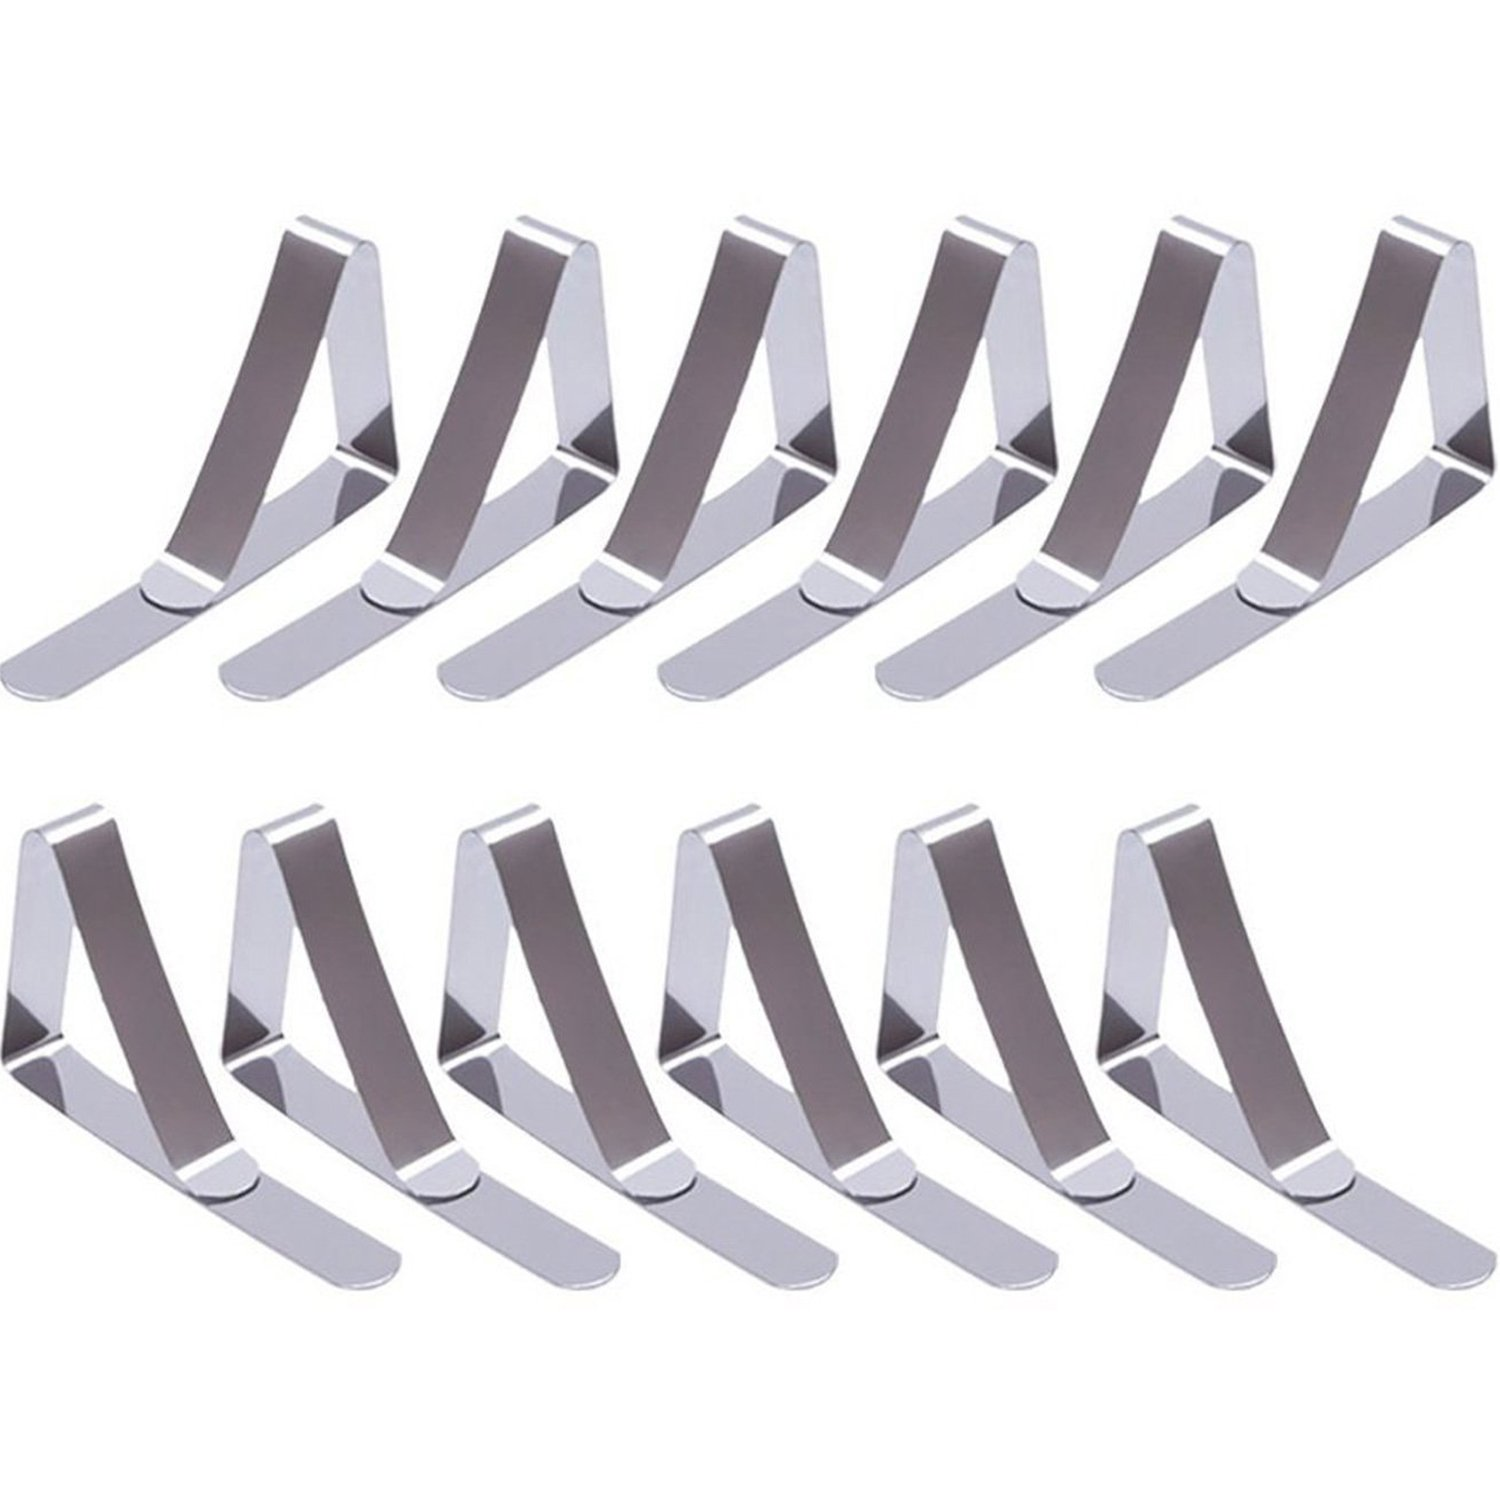 12 Packs Tablecloth Clips Stainless Steel Table Cover Clamps Table Cloth Holders (Silver) eBoot